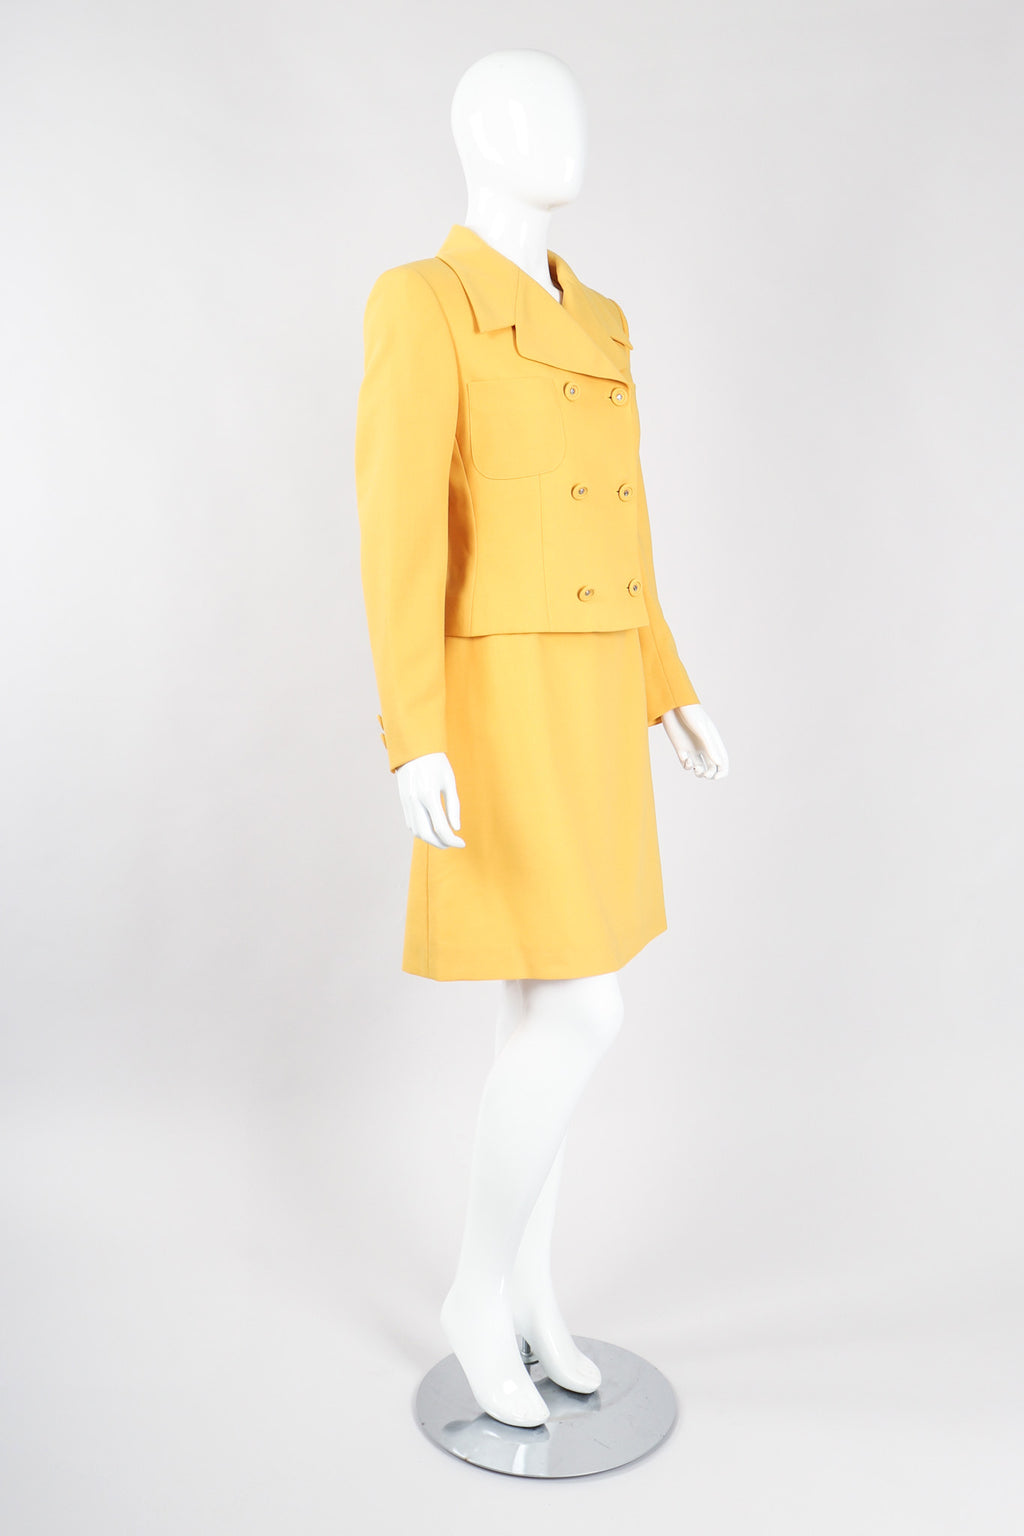 Recess Los Angeles Vintage Istante Versace Jackie O Golden Jacket & Skirt Suit Set